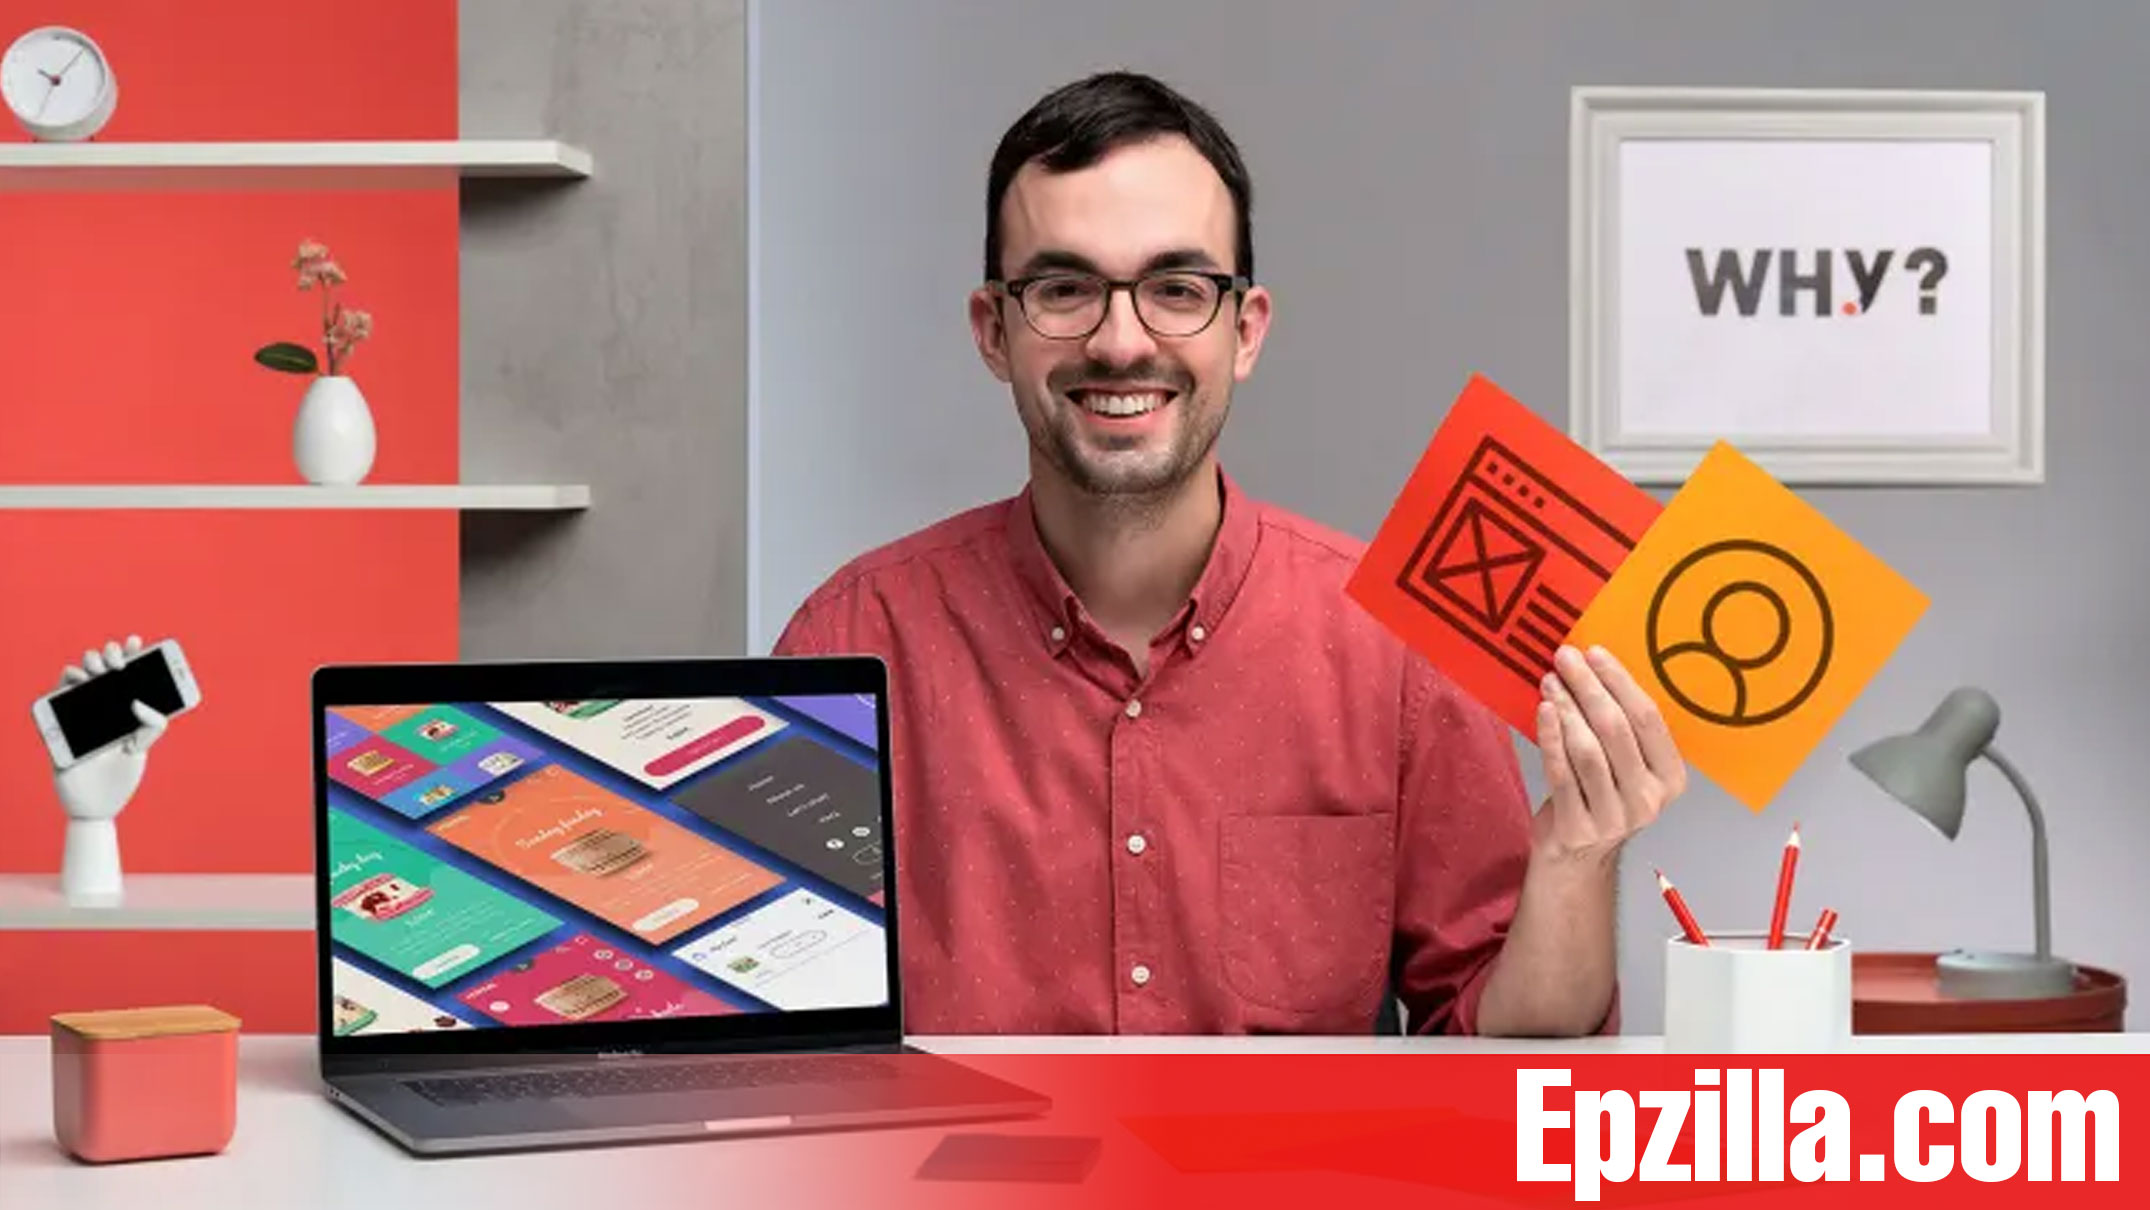 Domestika Introduction to UX Design By Ethan Parry Free Download Epzilla.com